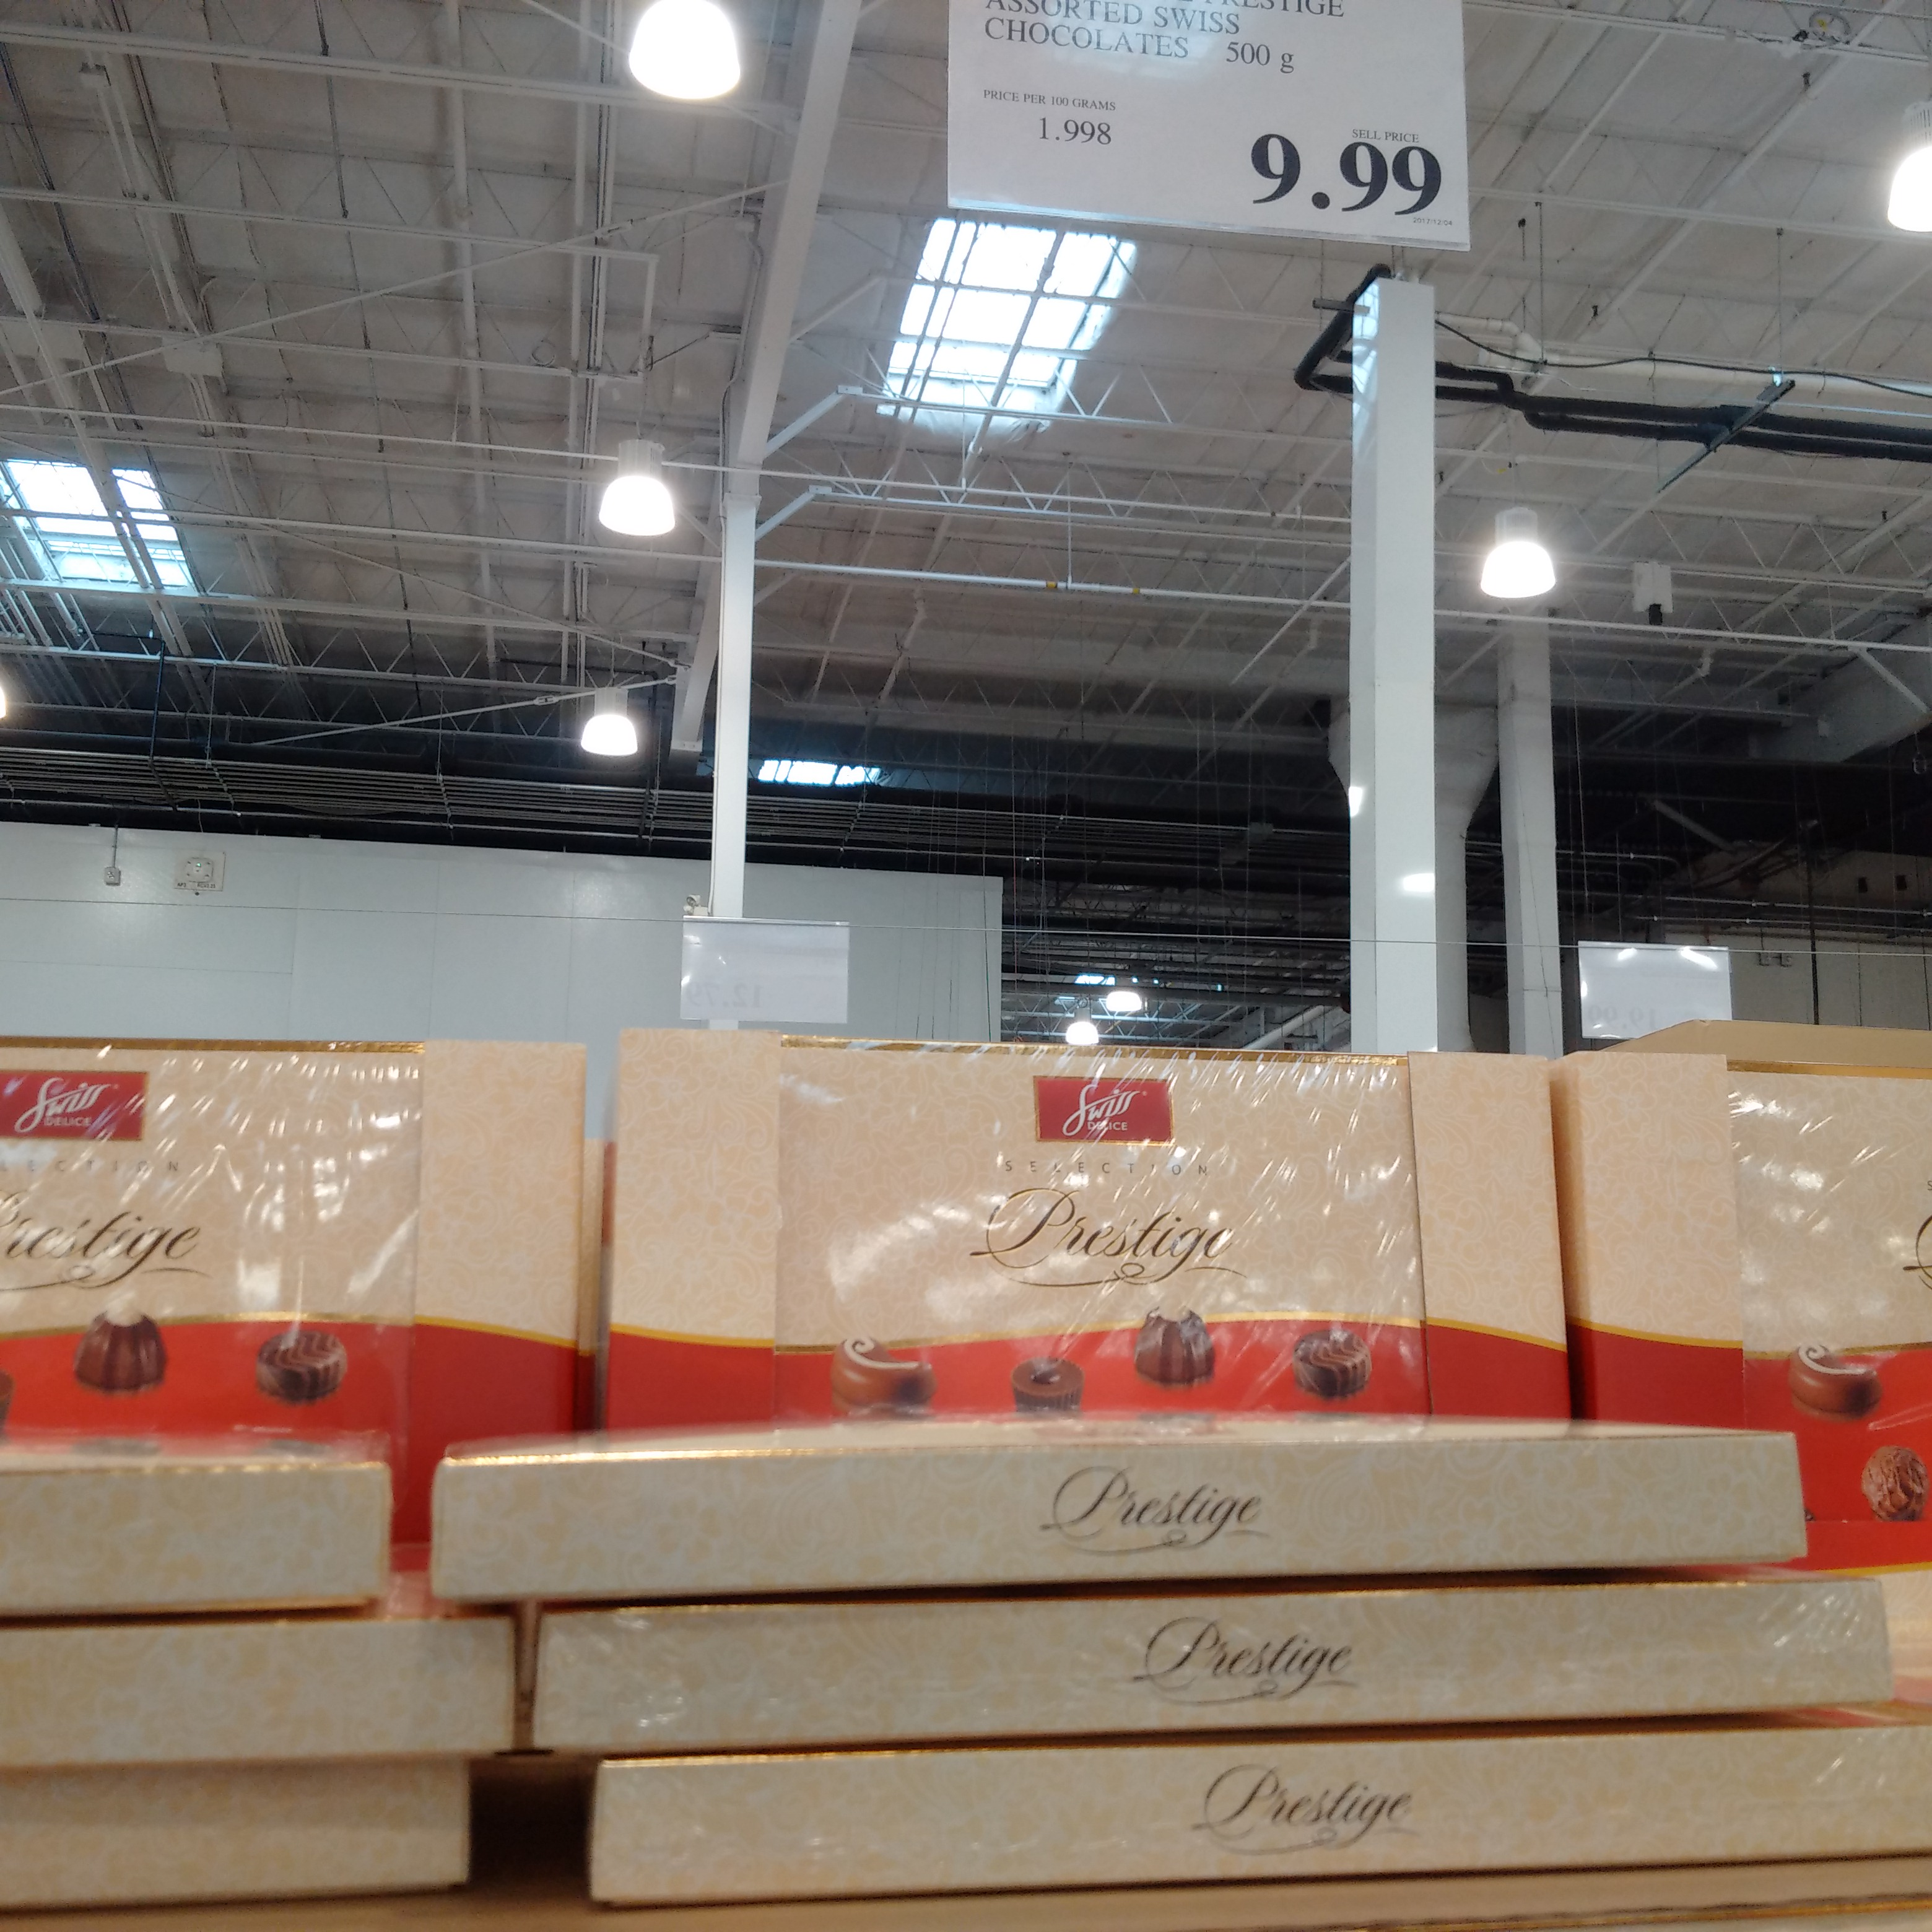 Costco Holiday Gift Baskets And Chocolates